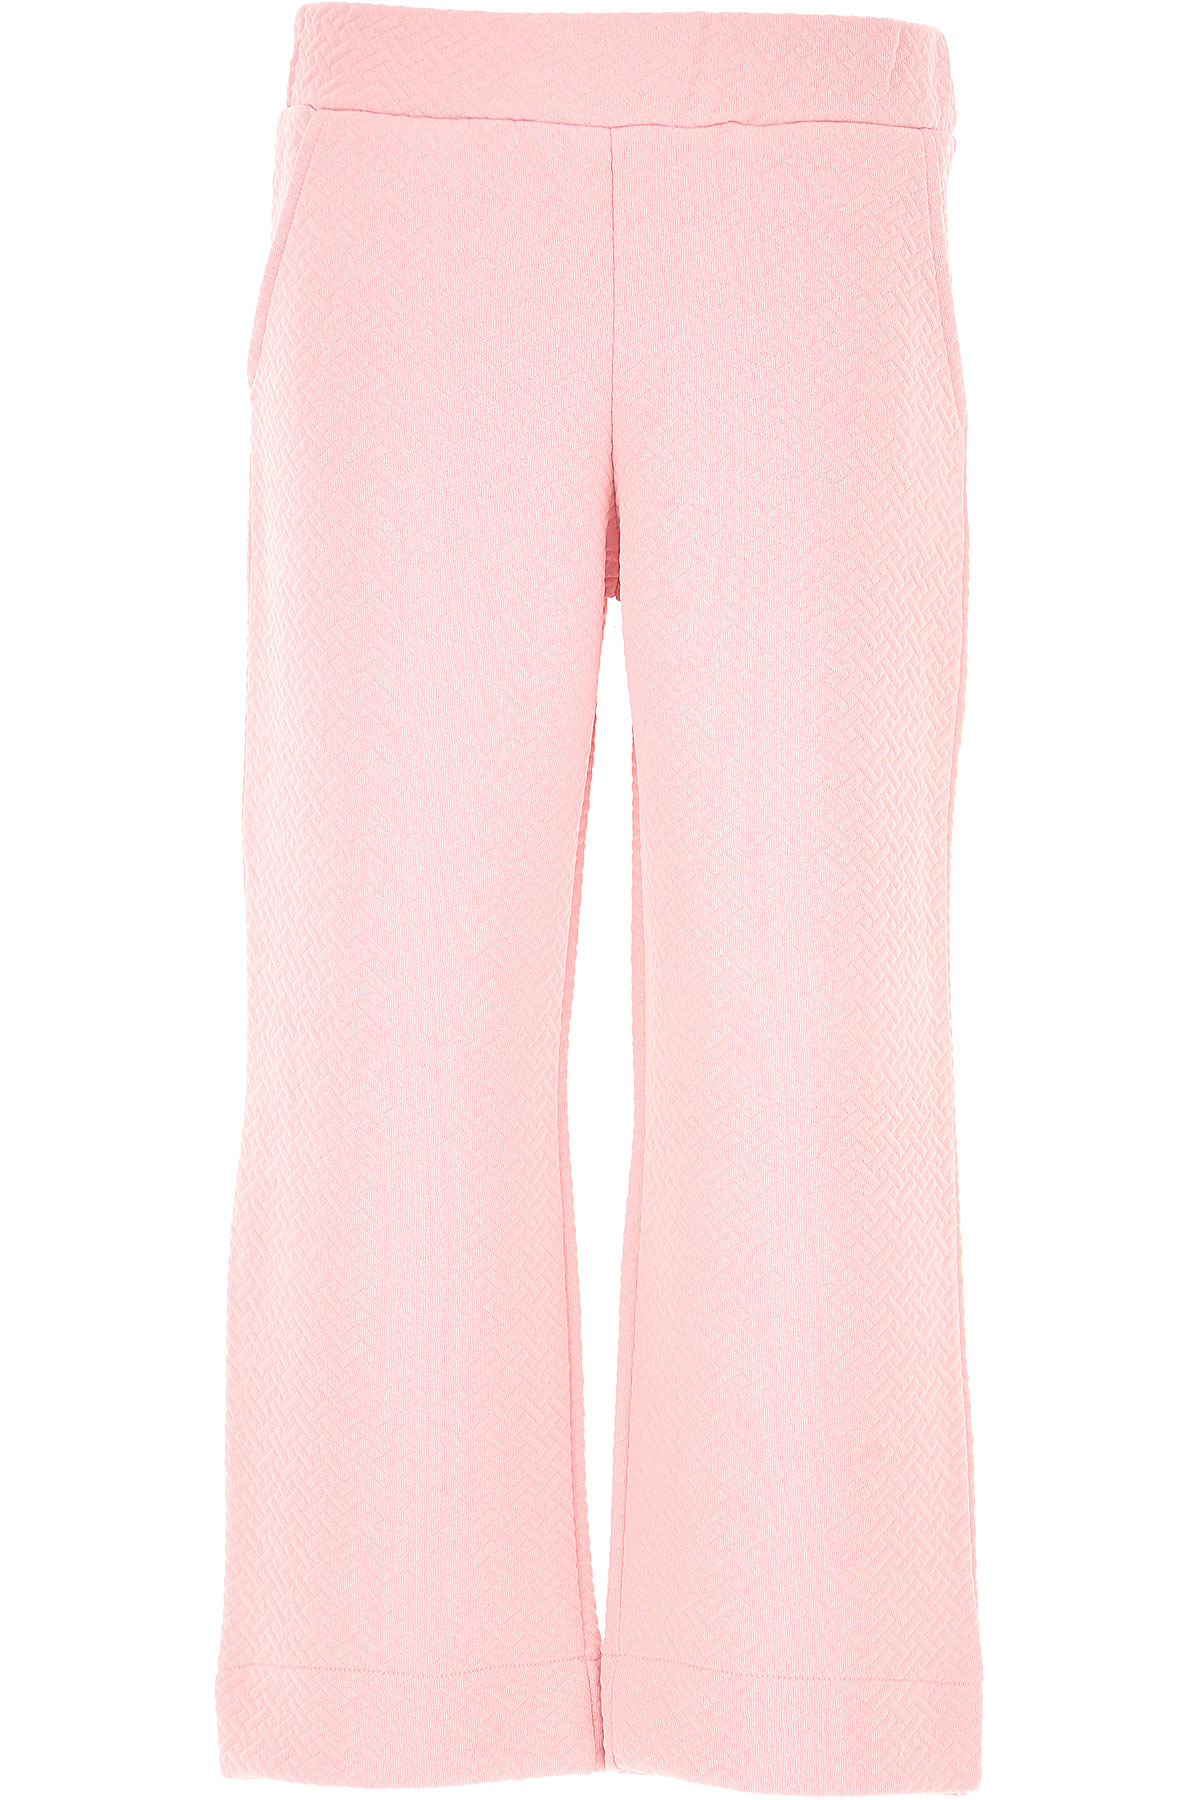 Image of Douuod Kids Pants for Girls, Pink, polyester, 2017, 10Y 14Y 2Y 4Y 6Y 8Y